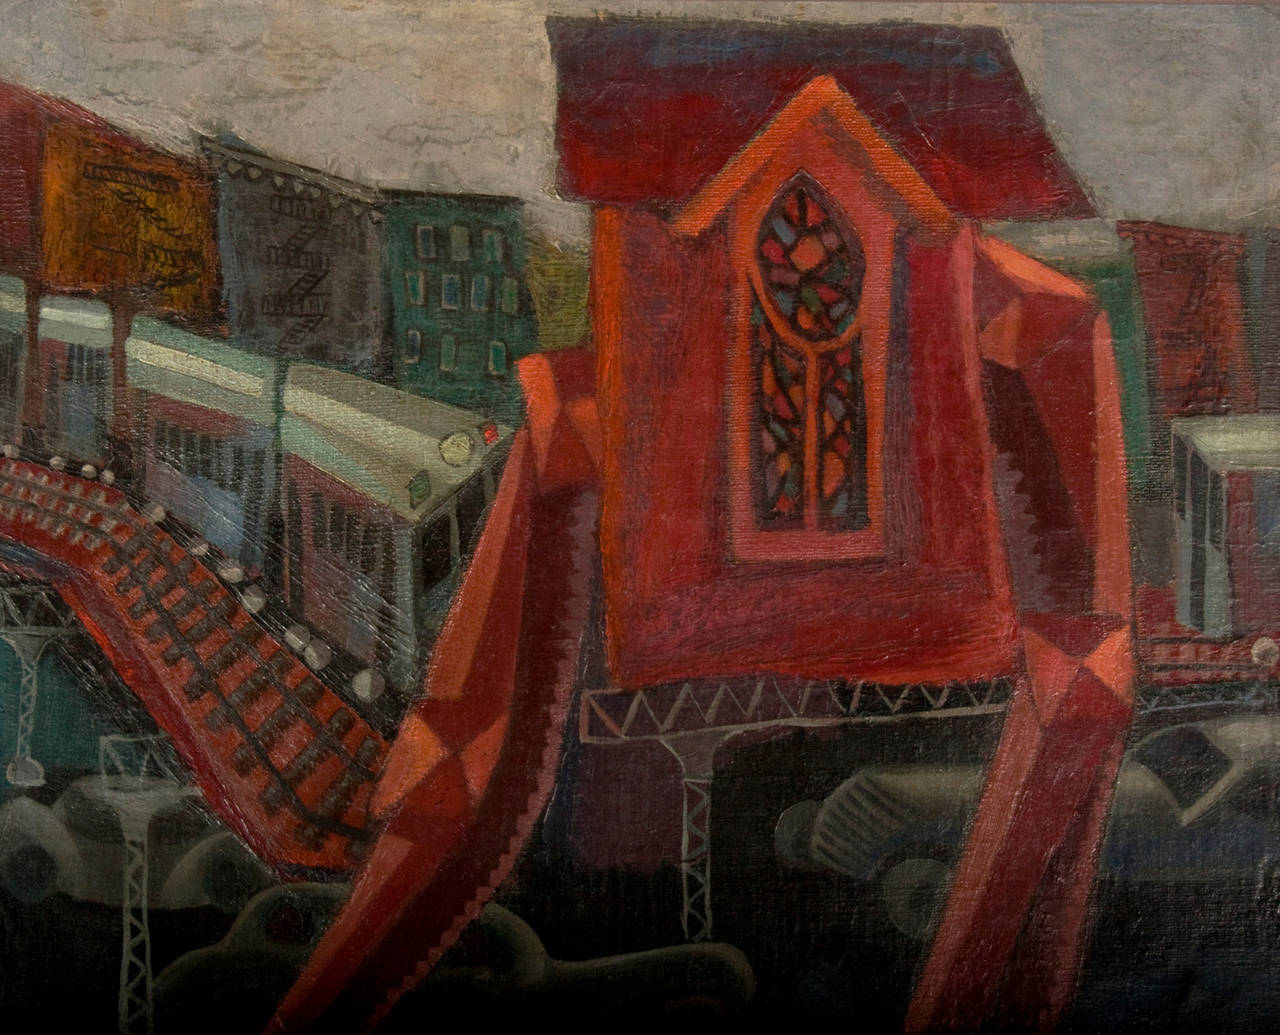 A train platform rises above assembled automobiles parked below a bridge, in this transportation minded New York City urban cityscape, atop an almost surrealist cathedral at night rises into the night. Captured with oils on canvas in a dark haunting